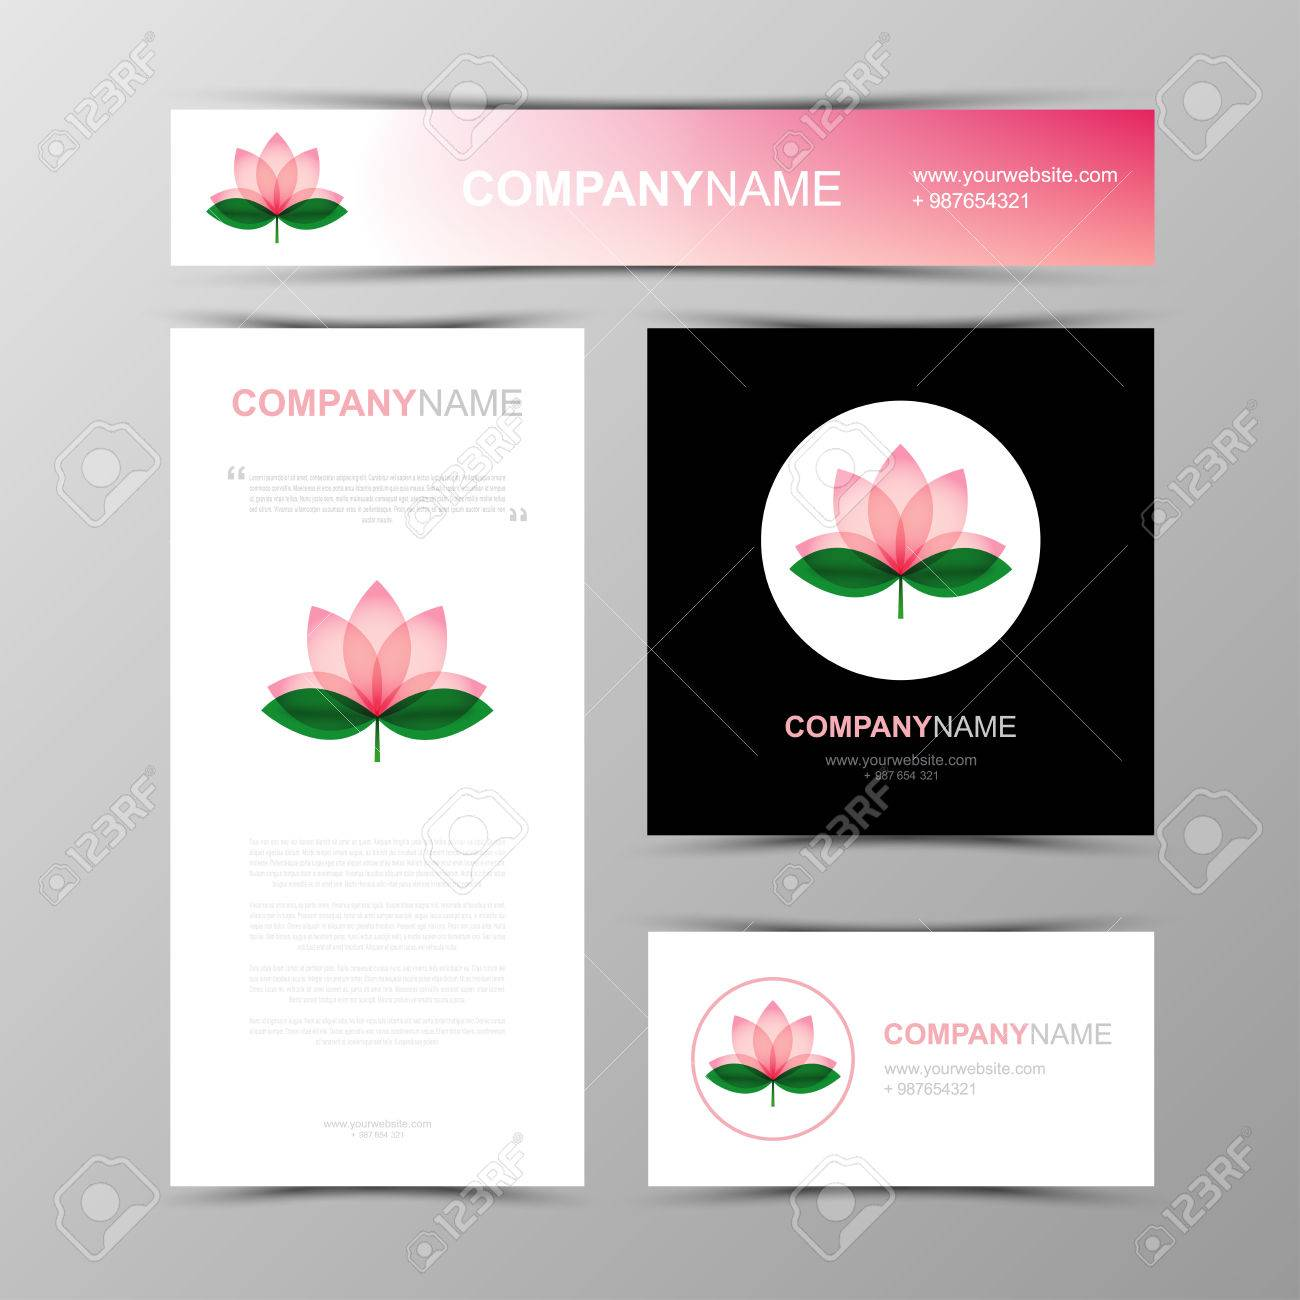 Template Of Identity For Yoga Studio And Beauty Salon. Business ...